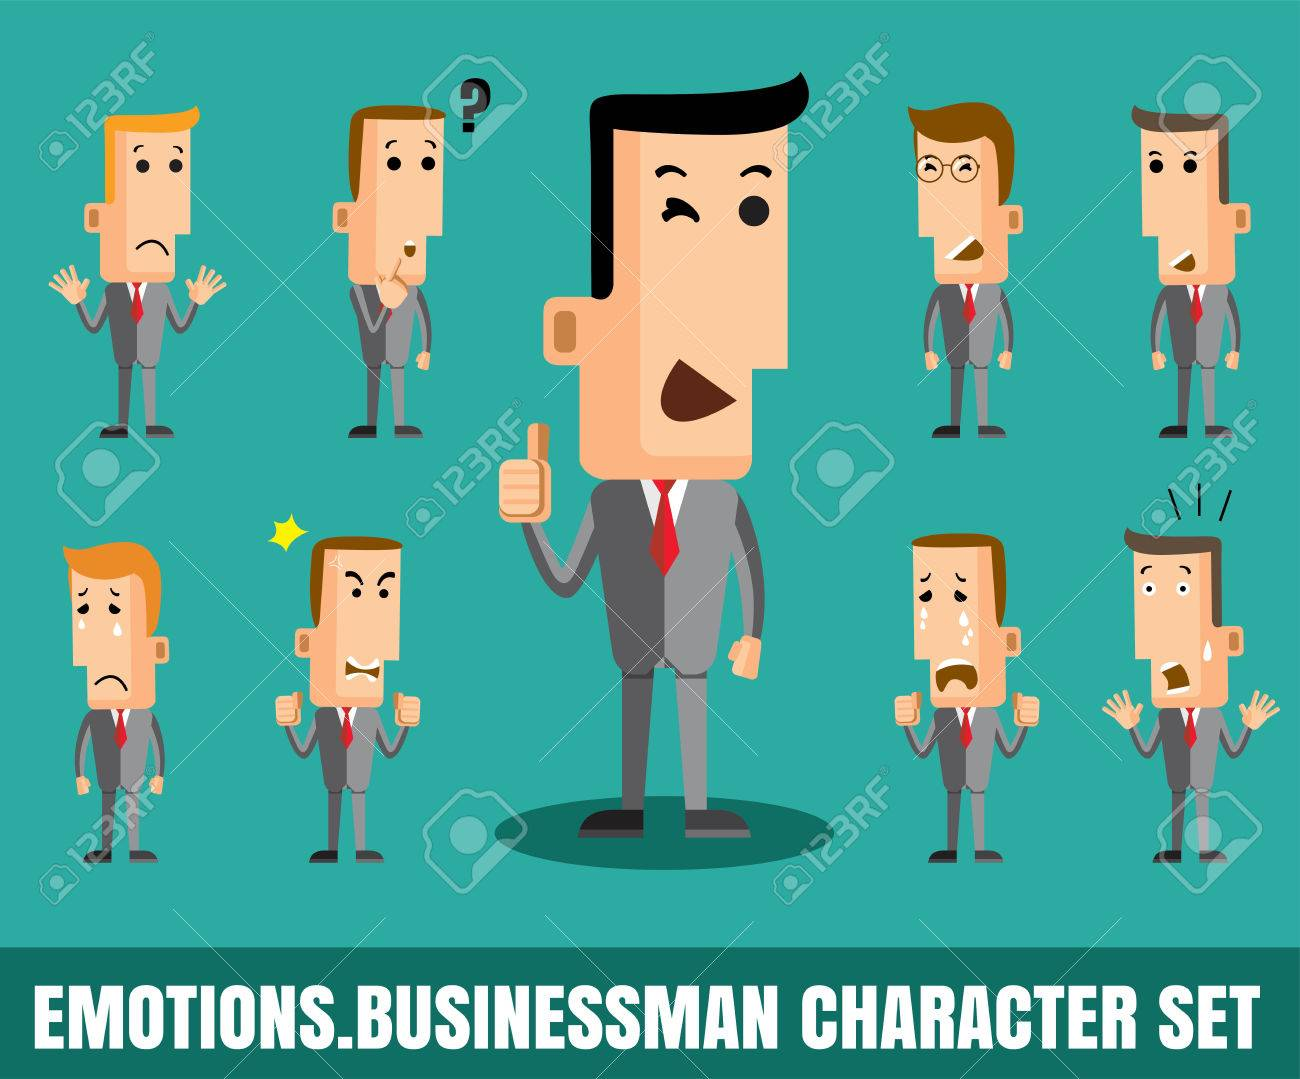 Illustration of businessman faces showing different emotions flat design  vector format eps 10 Stock Vector -